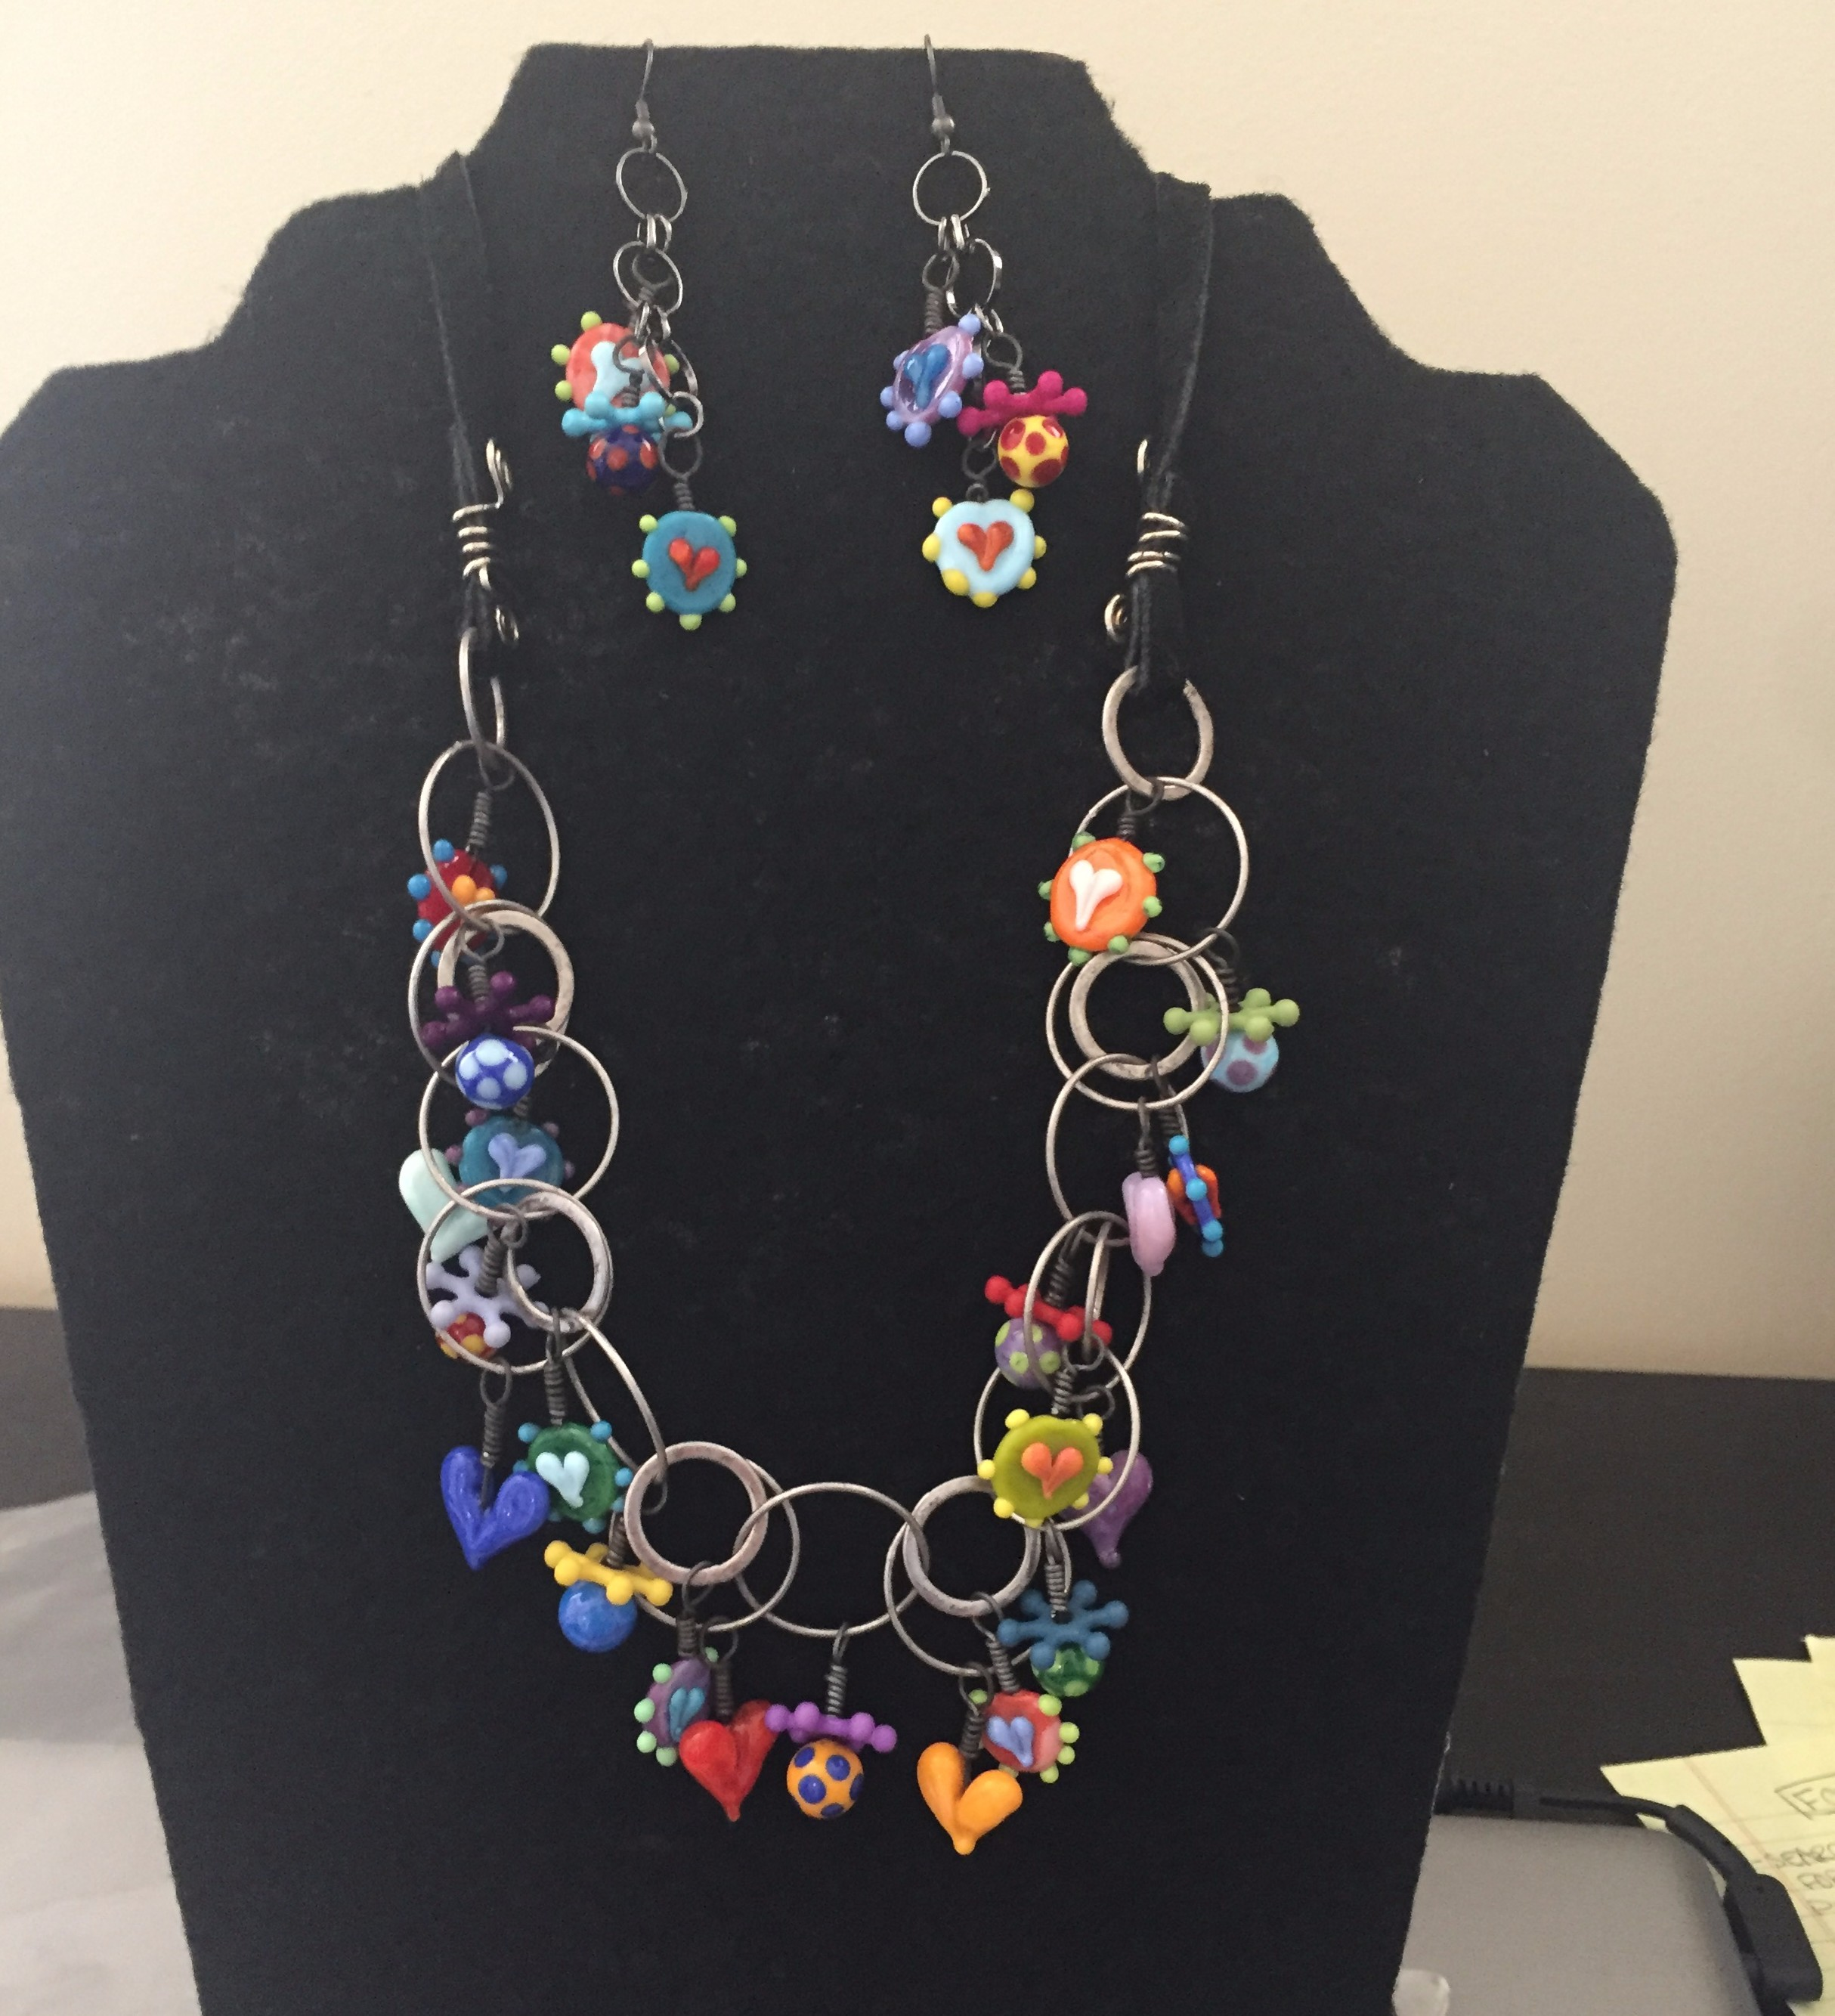 Strings of Bling whimsy necklace and earring set